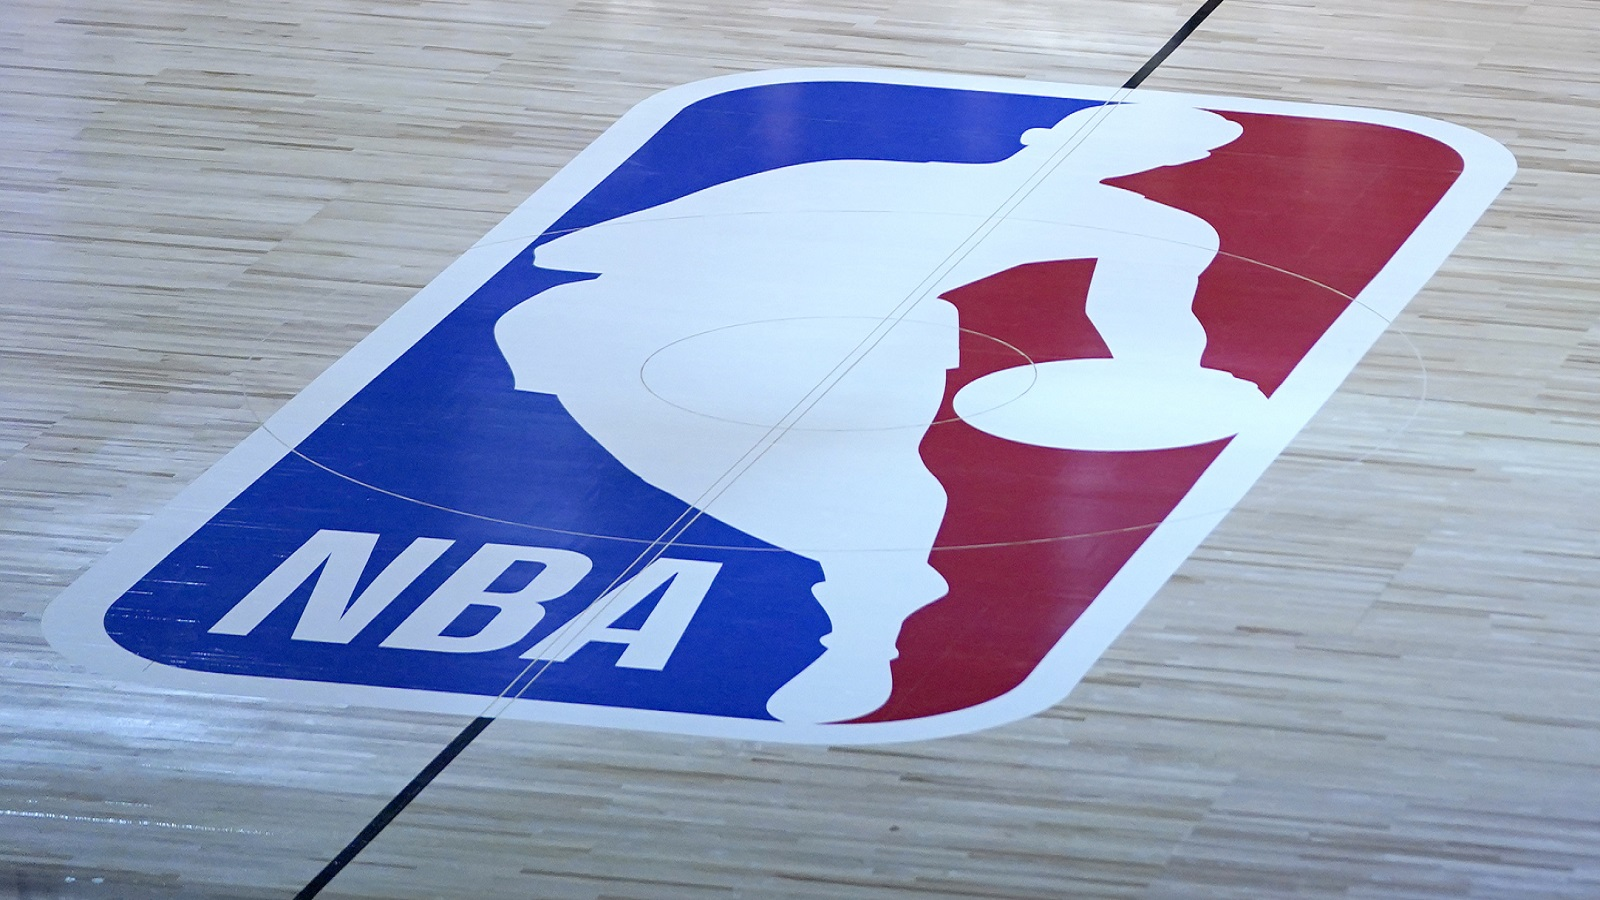 NBA Digital debuts redesigned digital products, League Pass enhancements for 2020-21 season